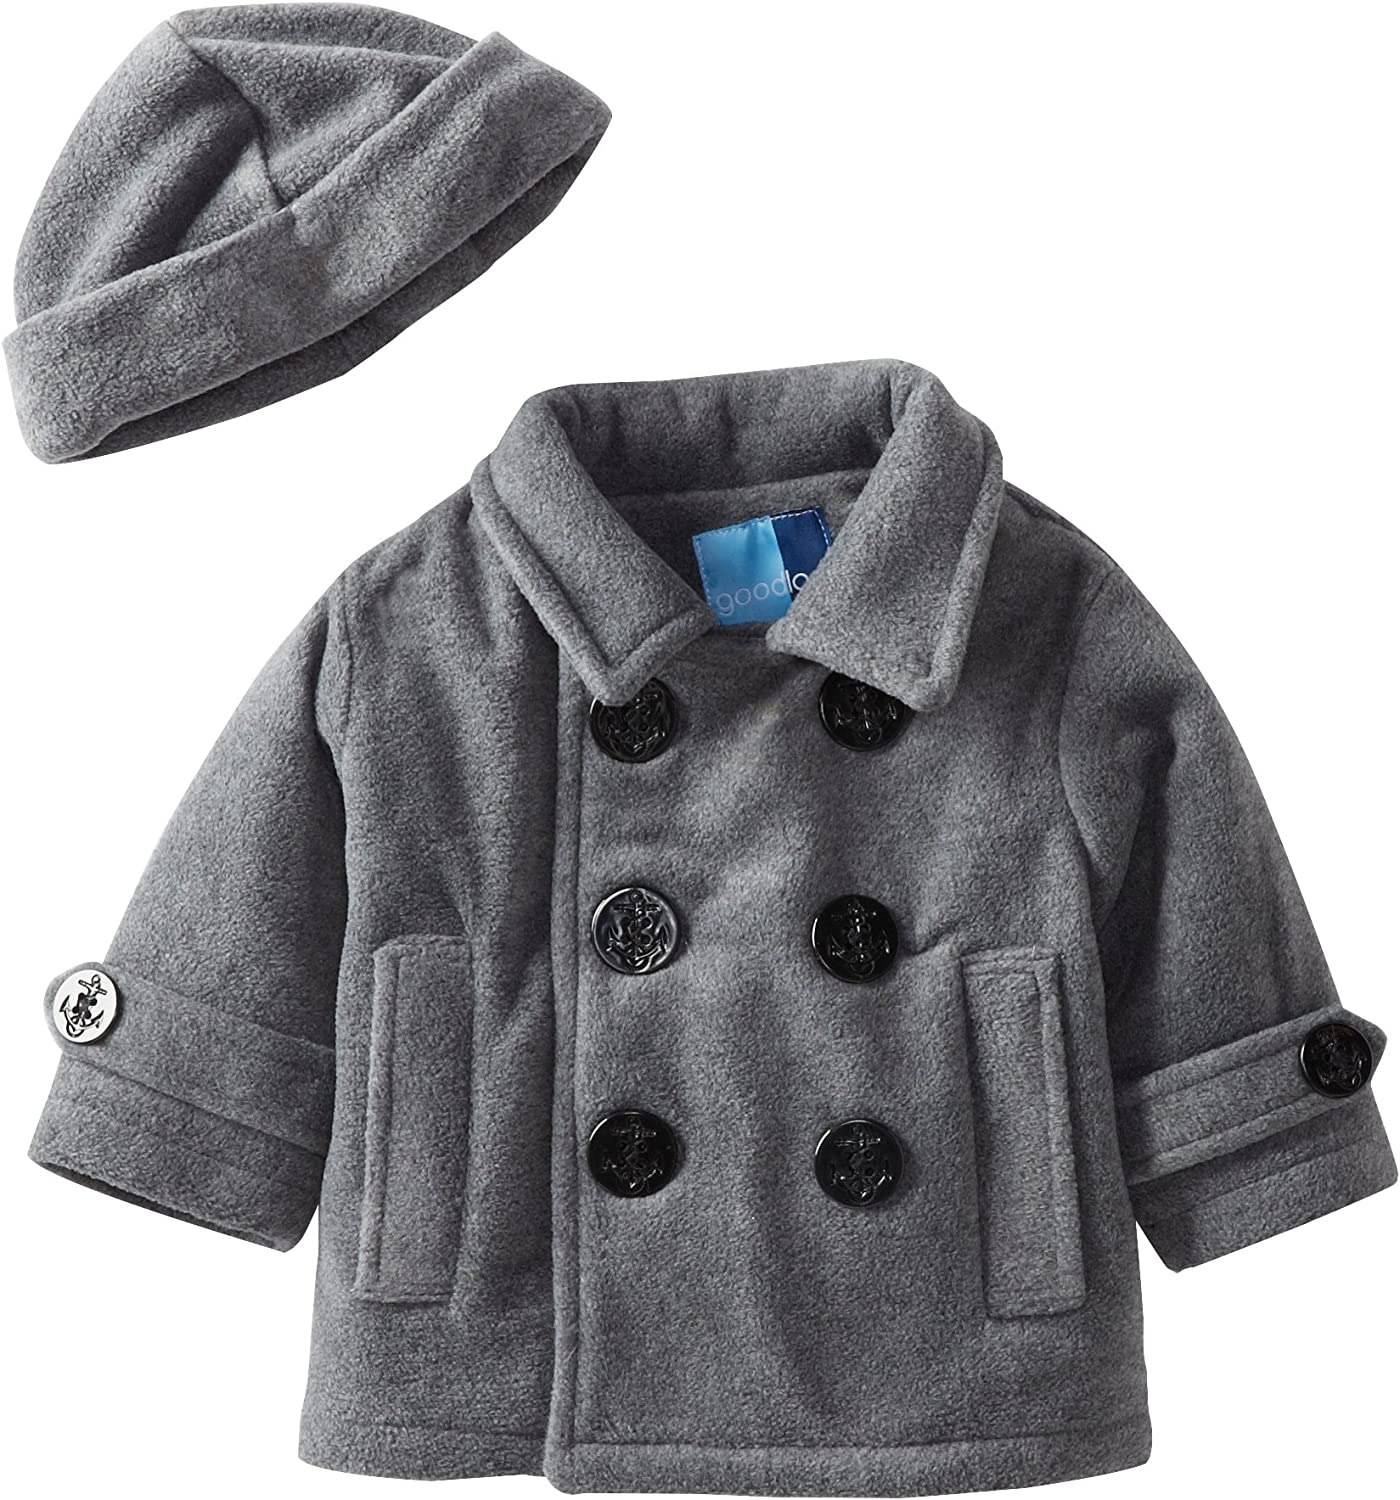 LONDON FOG BABY Coat Lined Nautical Pea Coat 12 months Free Shipping